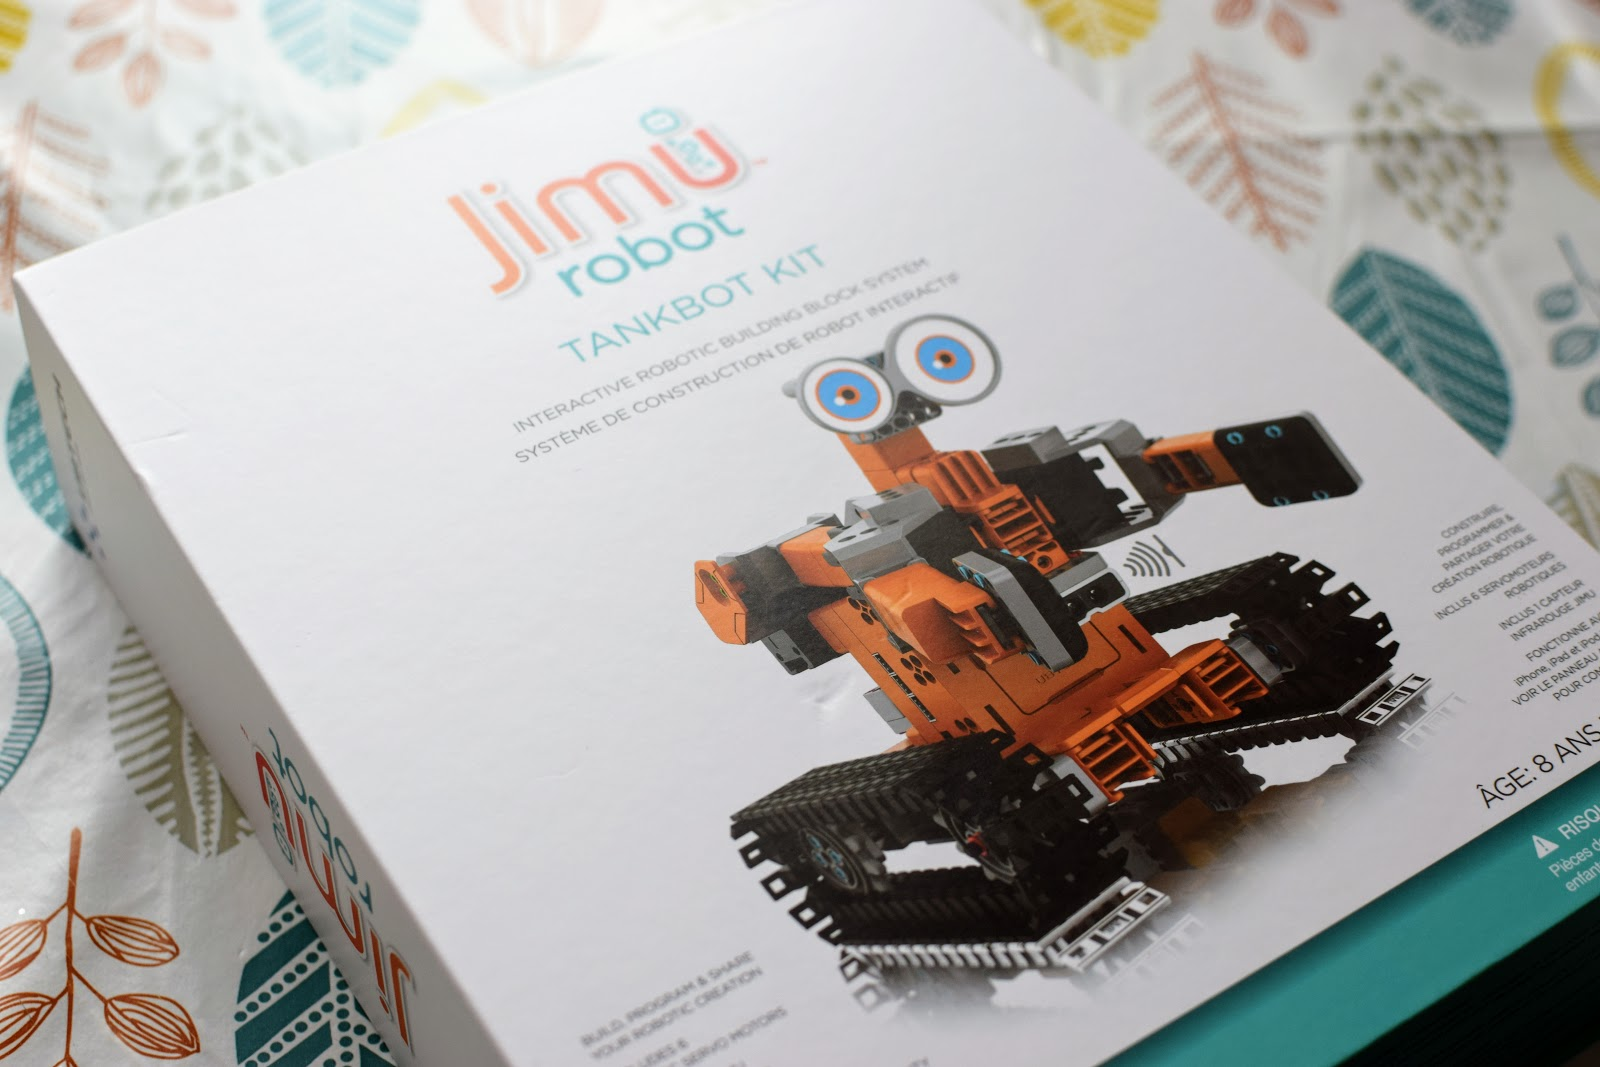 , STEM Learning: Jimu Robot Tankbot Kit- Get Kids Coding